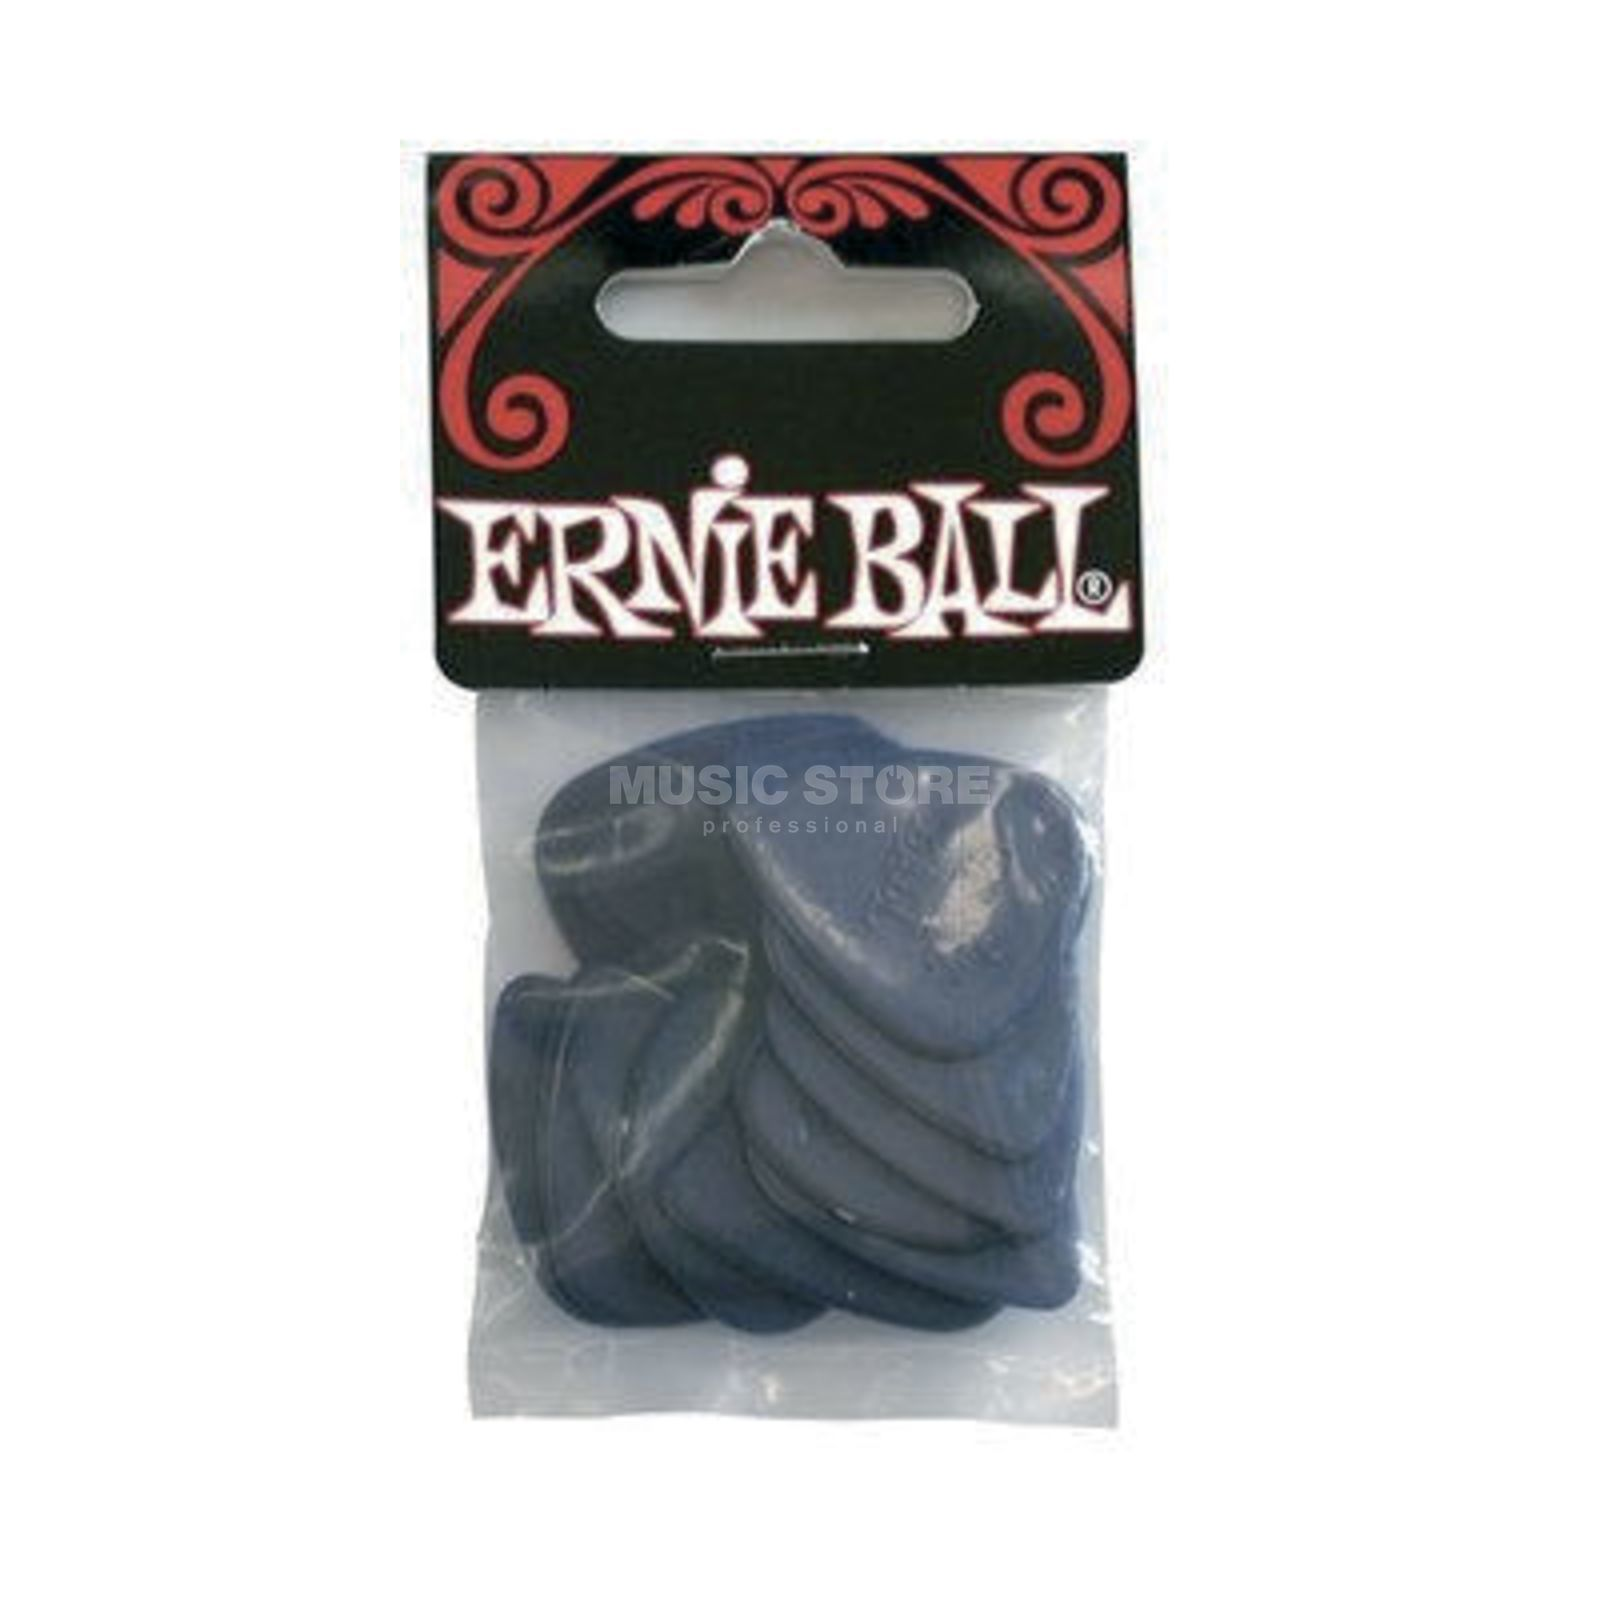 Ernie Ball Medium Nylon Picks 0,72 mm Box of 12 Produktbillede